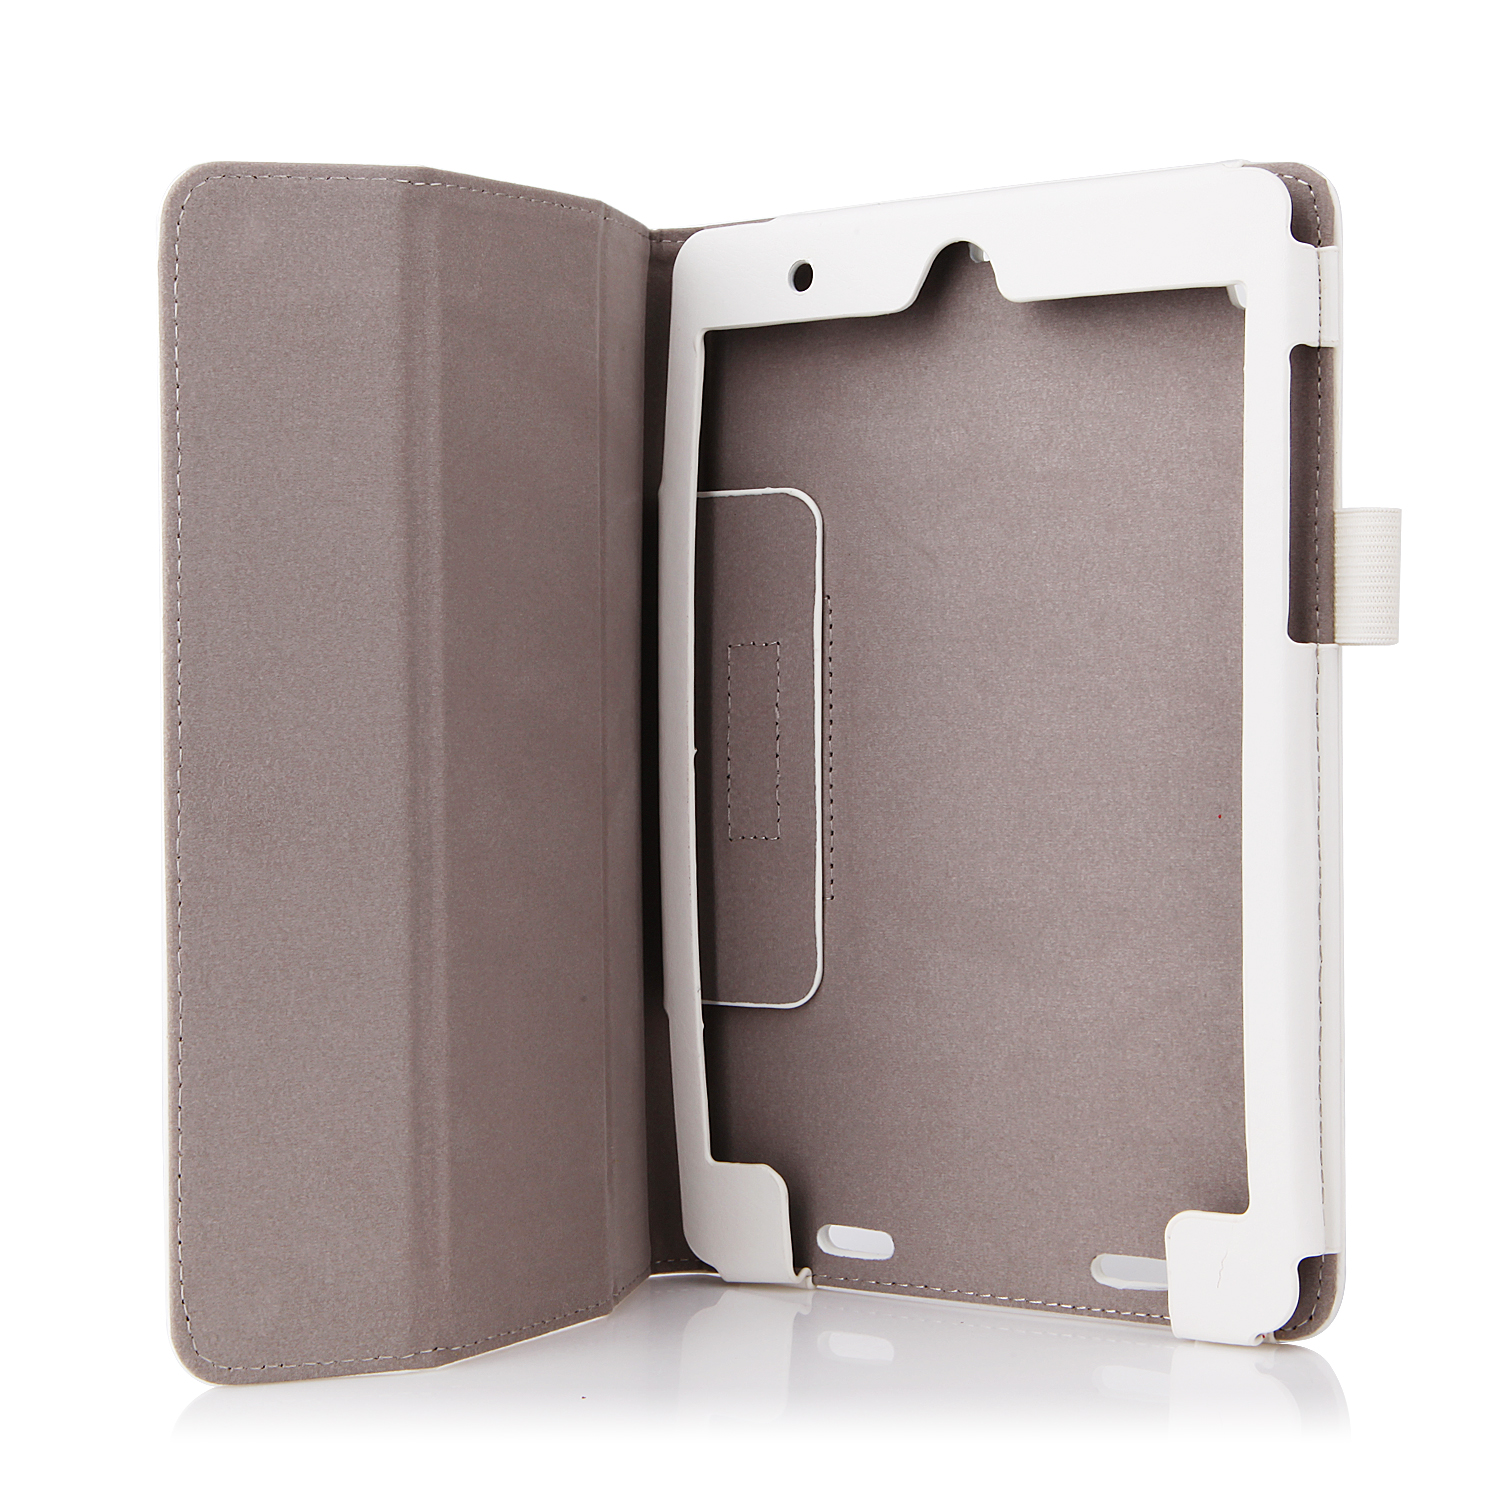 Protective PU Leather Stand Case Cover for the Mi Pad - White